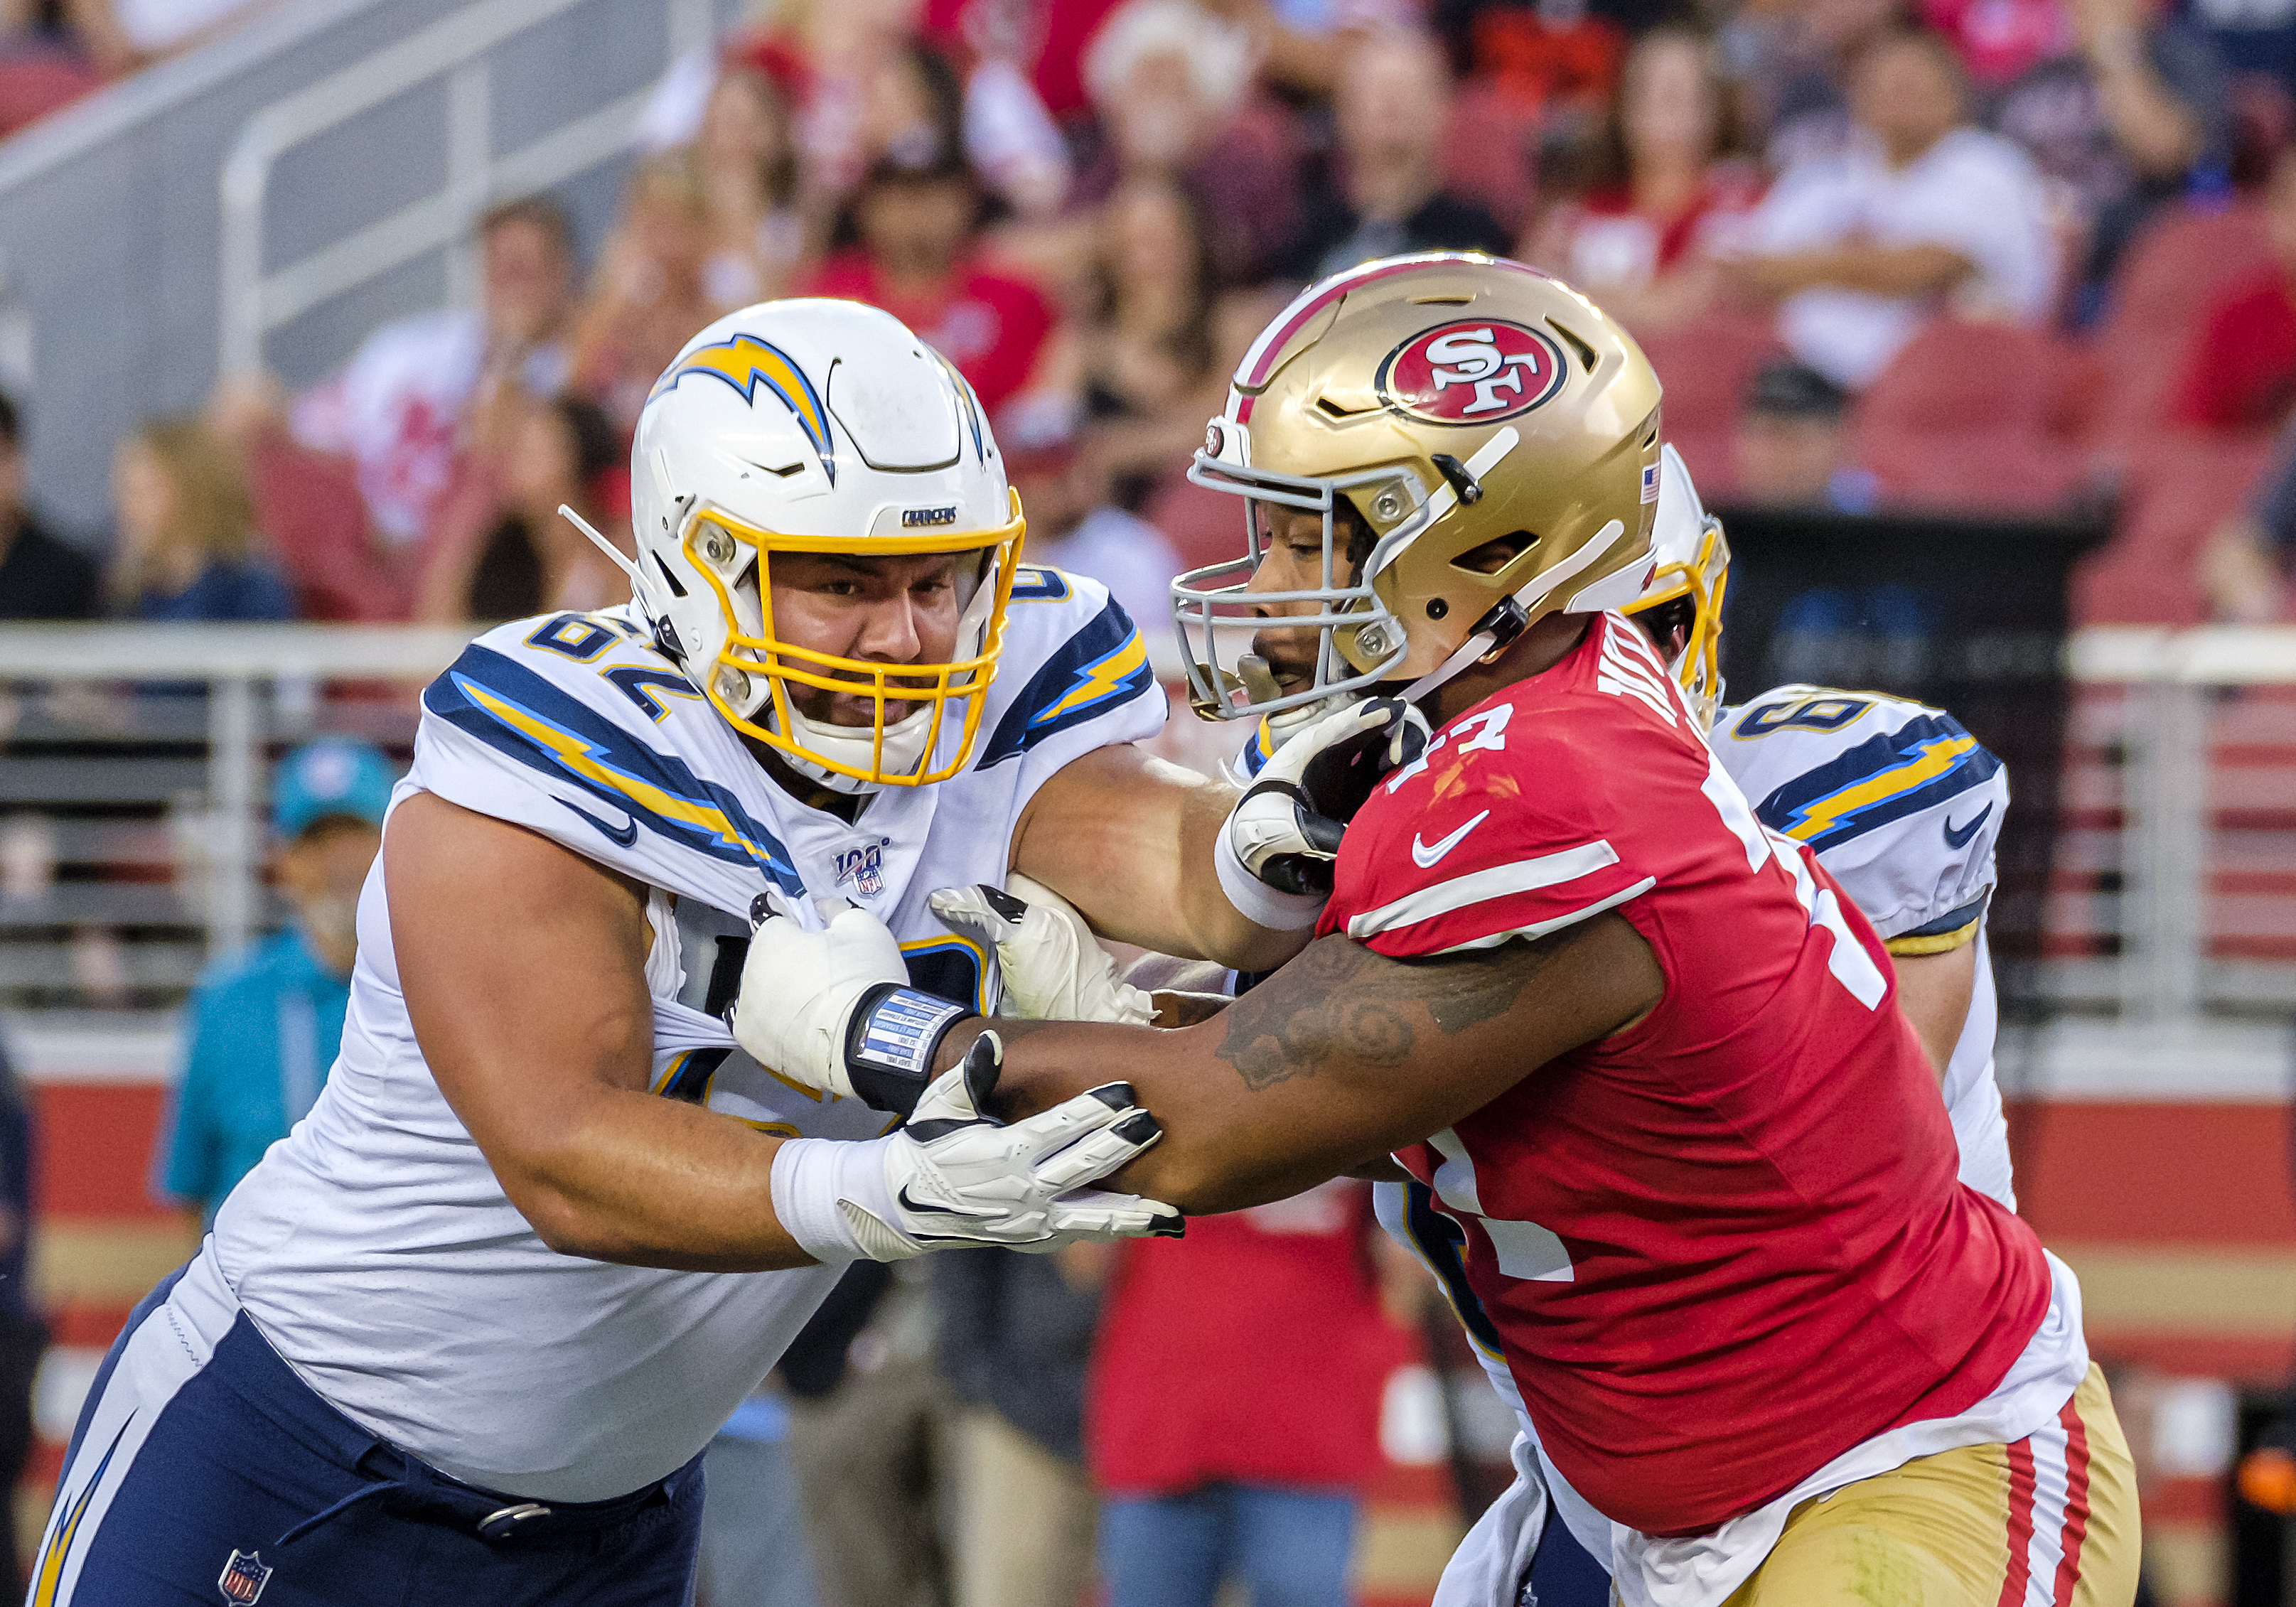 Chargers vs. 49ers